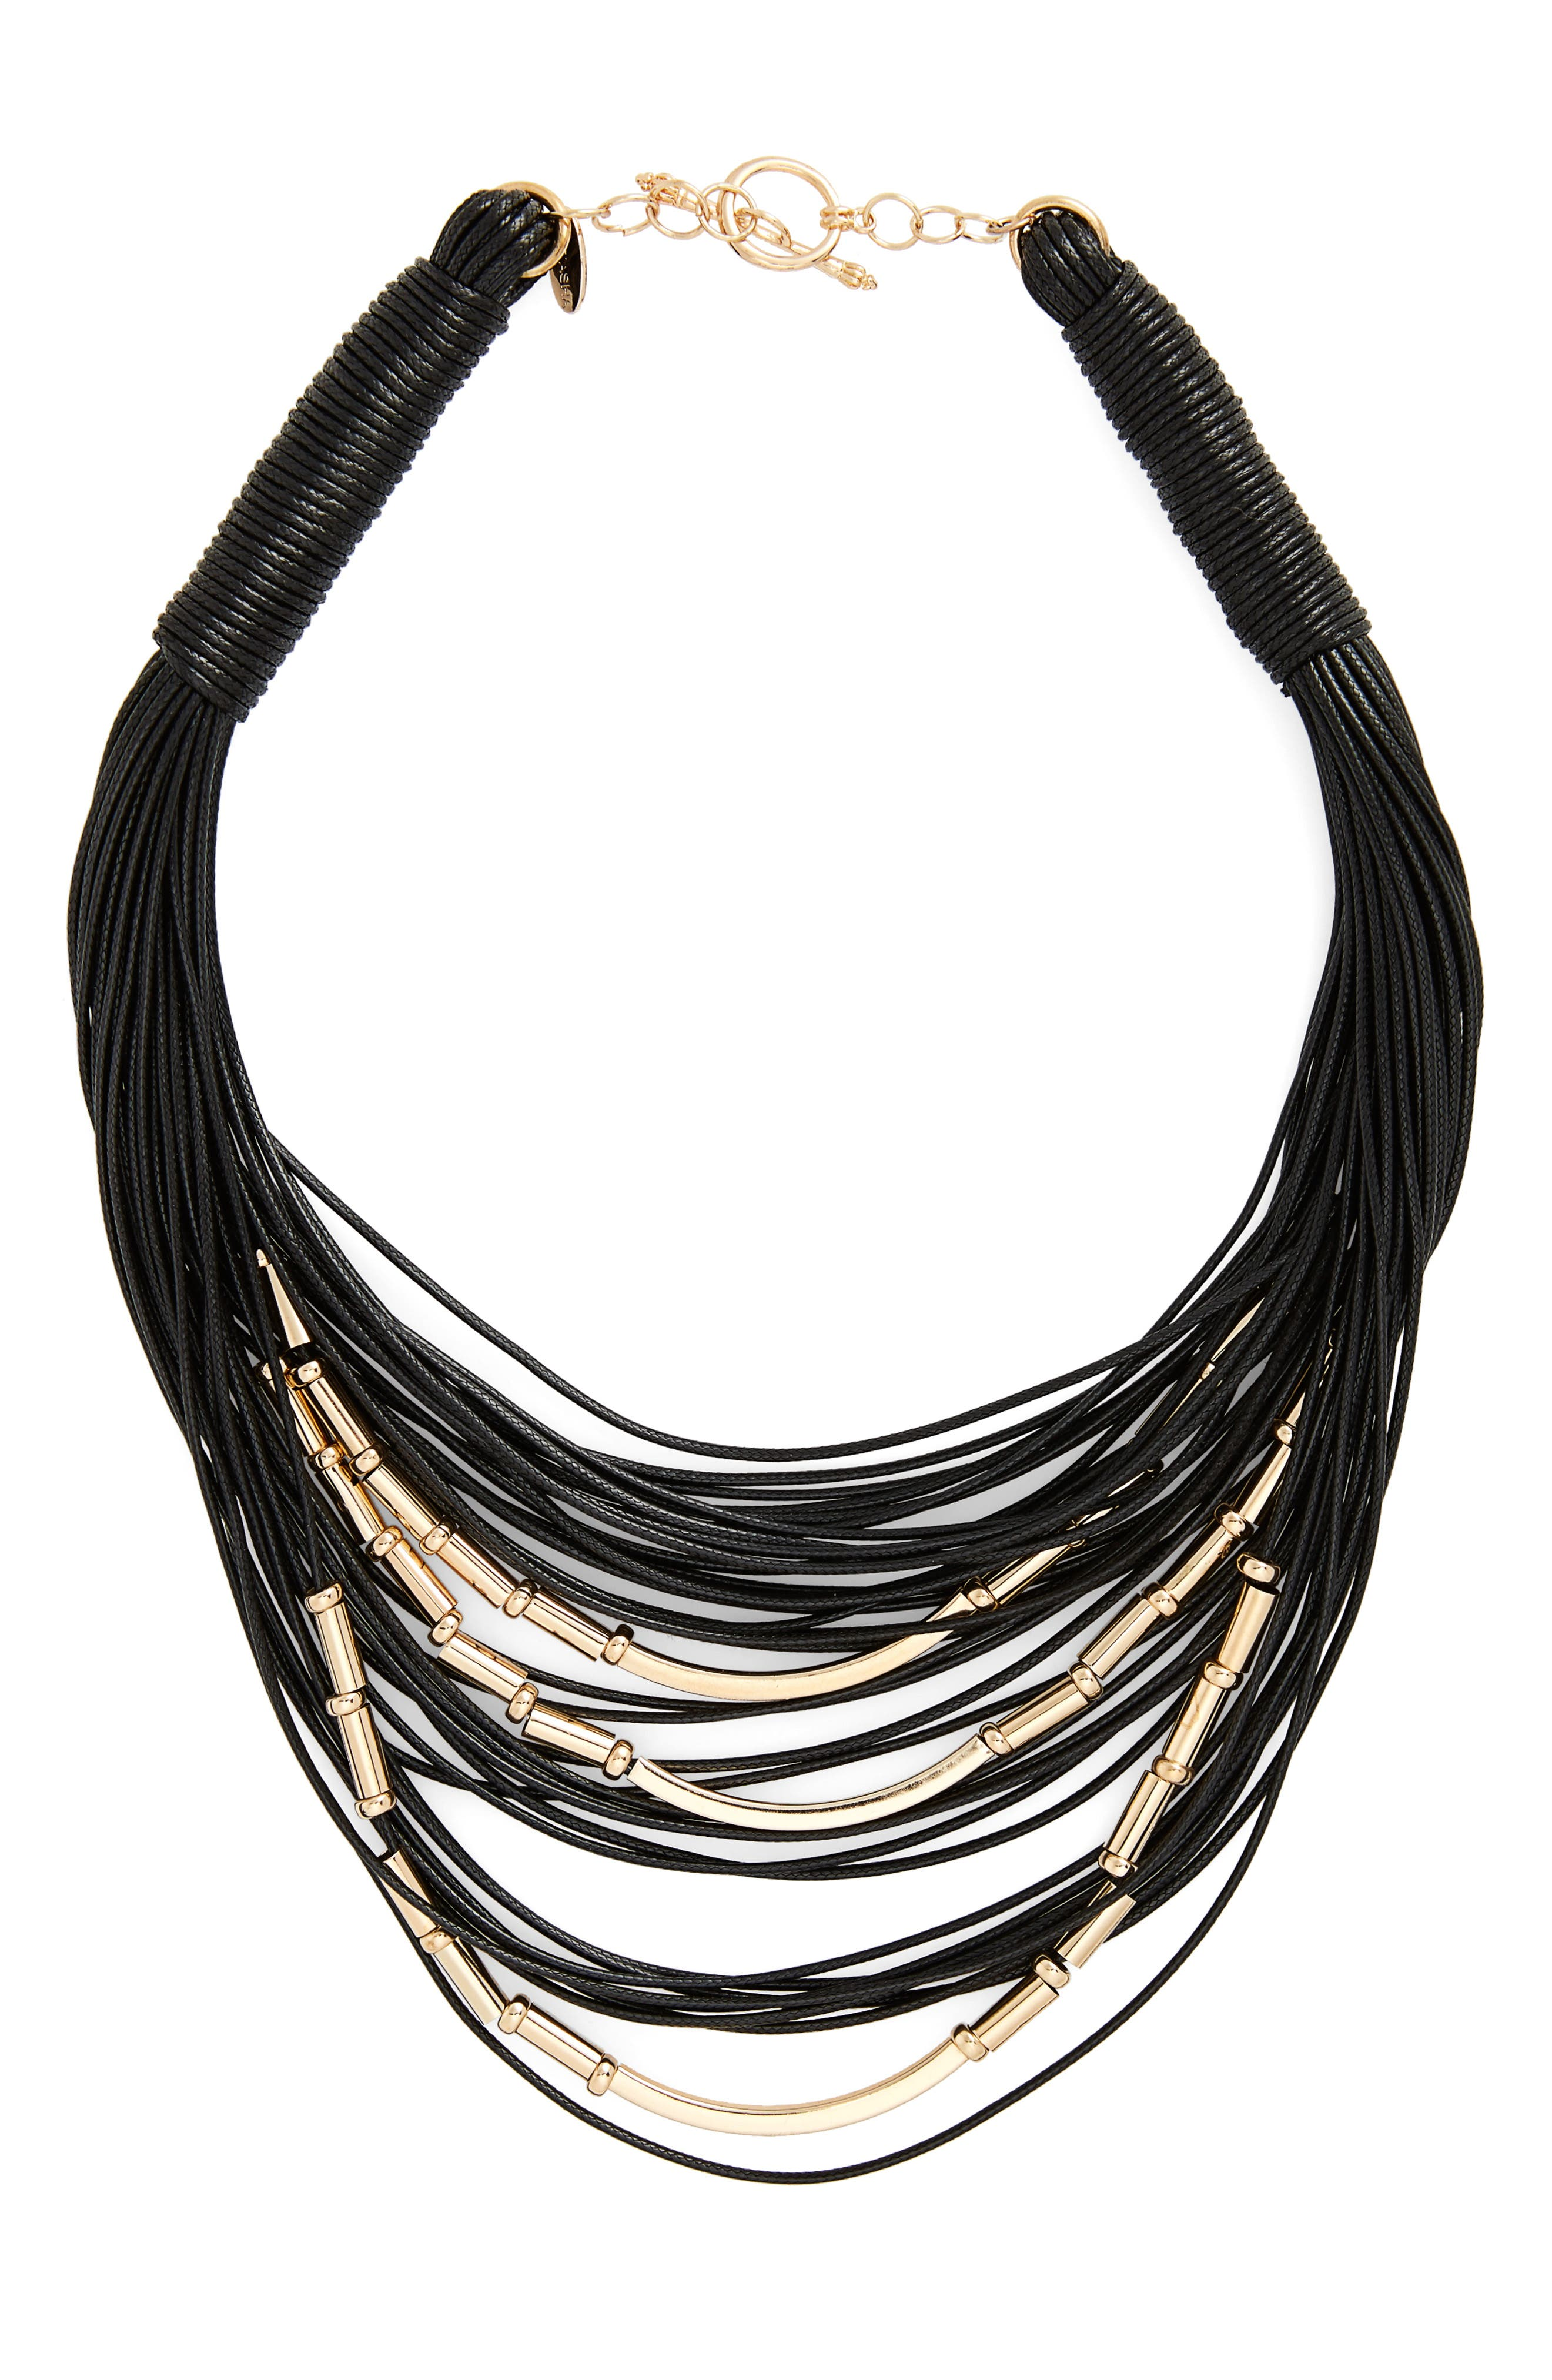 Beaded Multistrand Necklace,                         Main,                         color, Black/ Gold